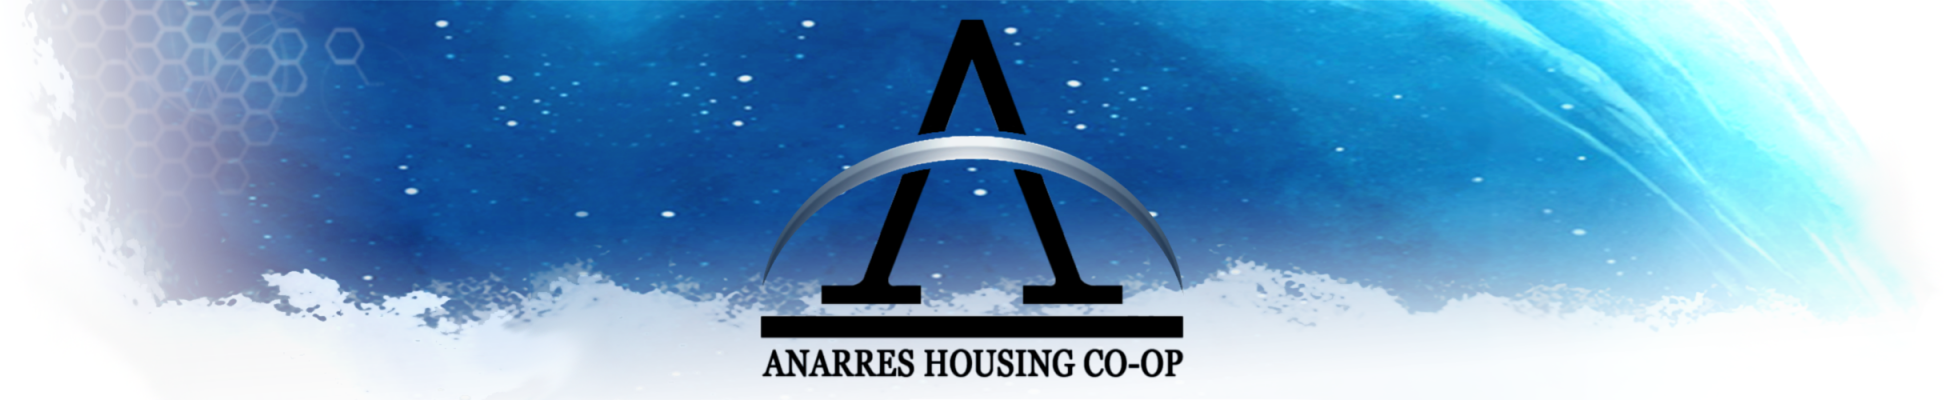 Anarres Housing Co-op